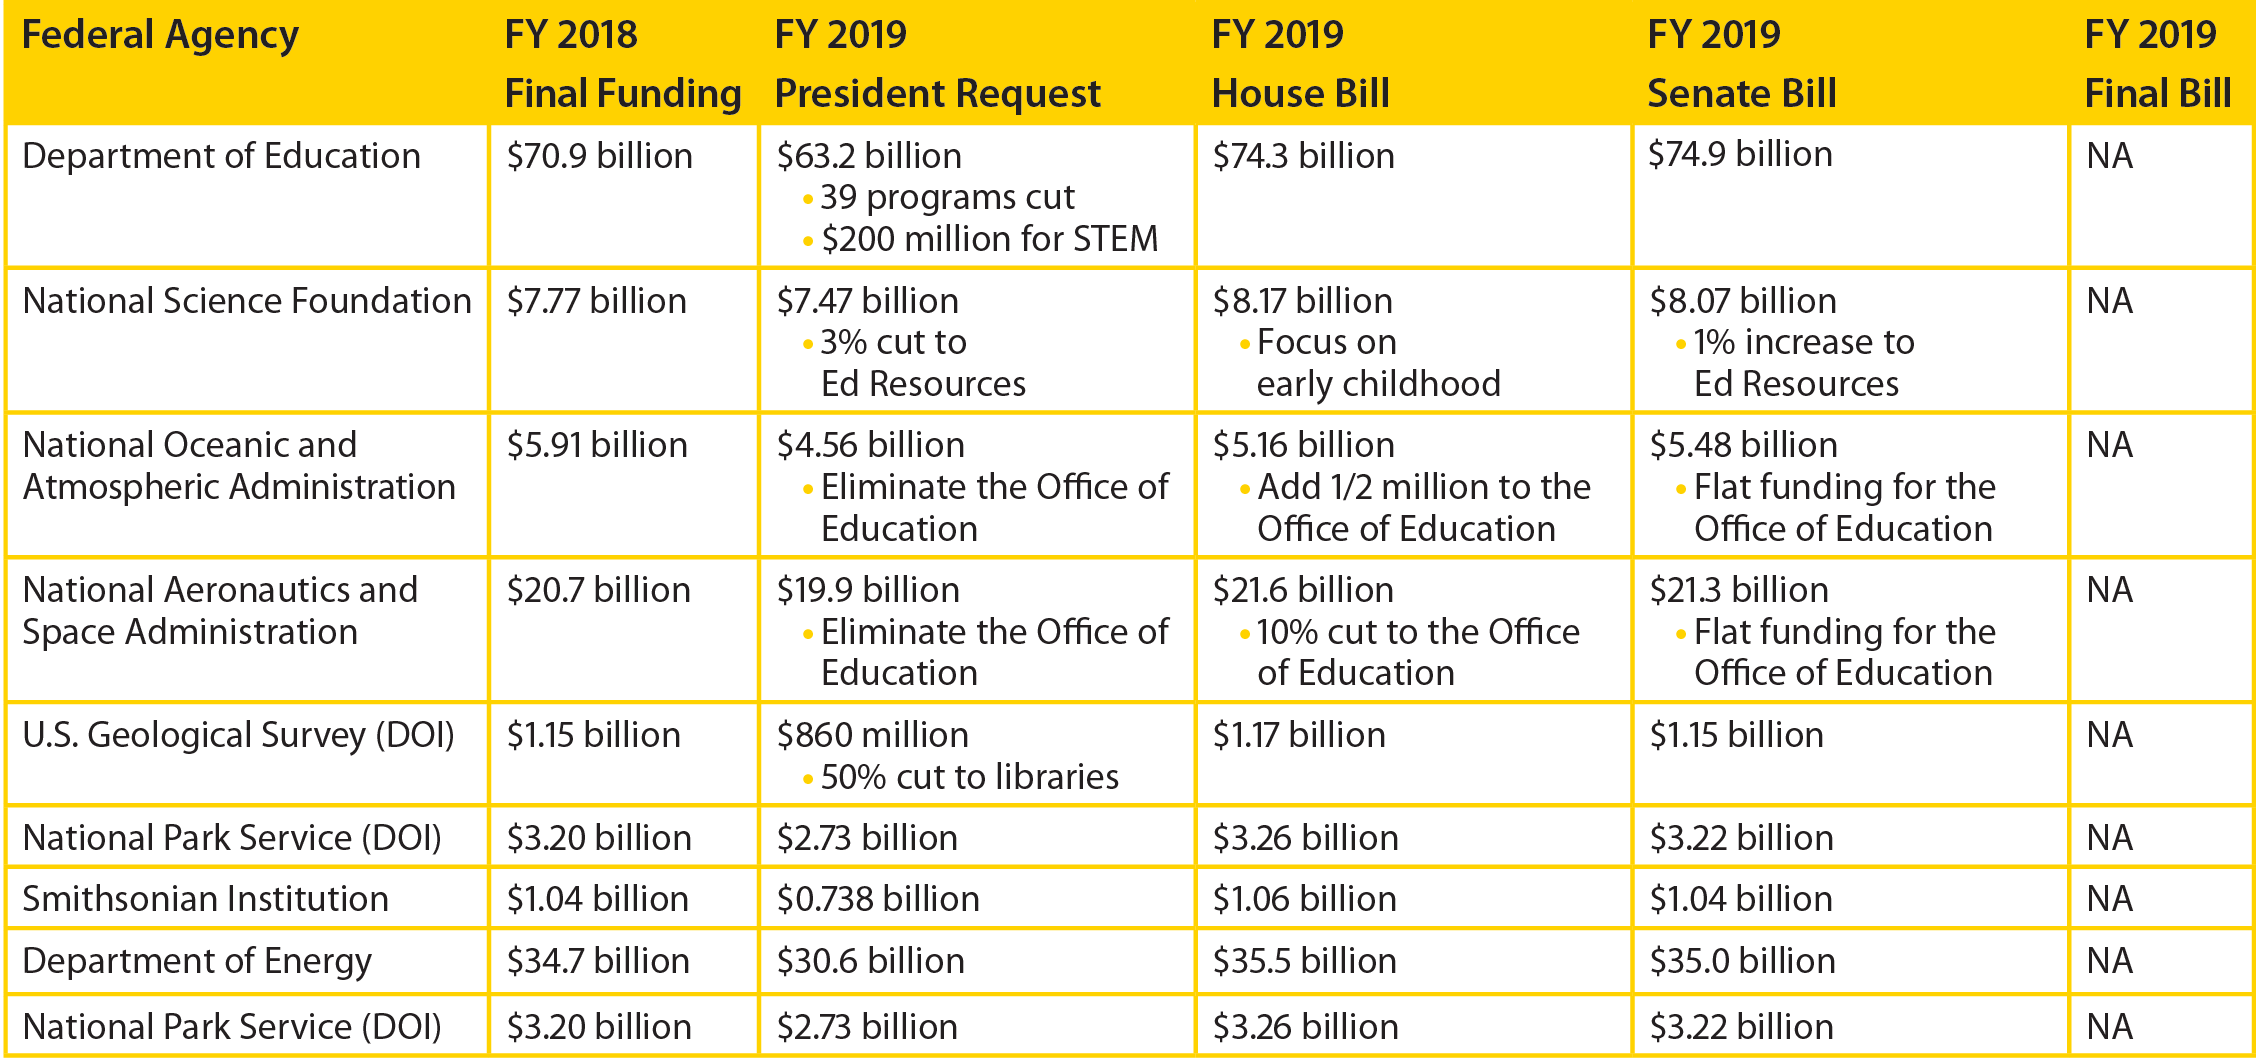 Federal Geoscience Agency FY 2019 Funding Process. Image Credit: American Geosciences Institute